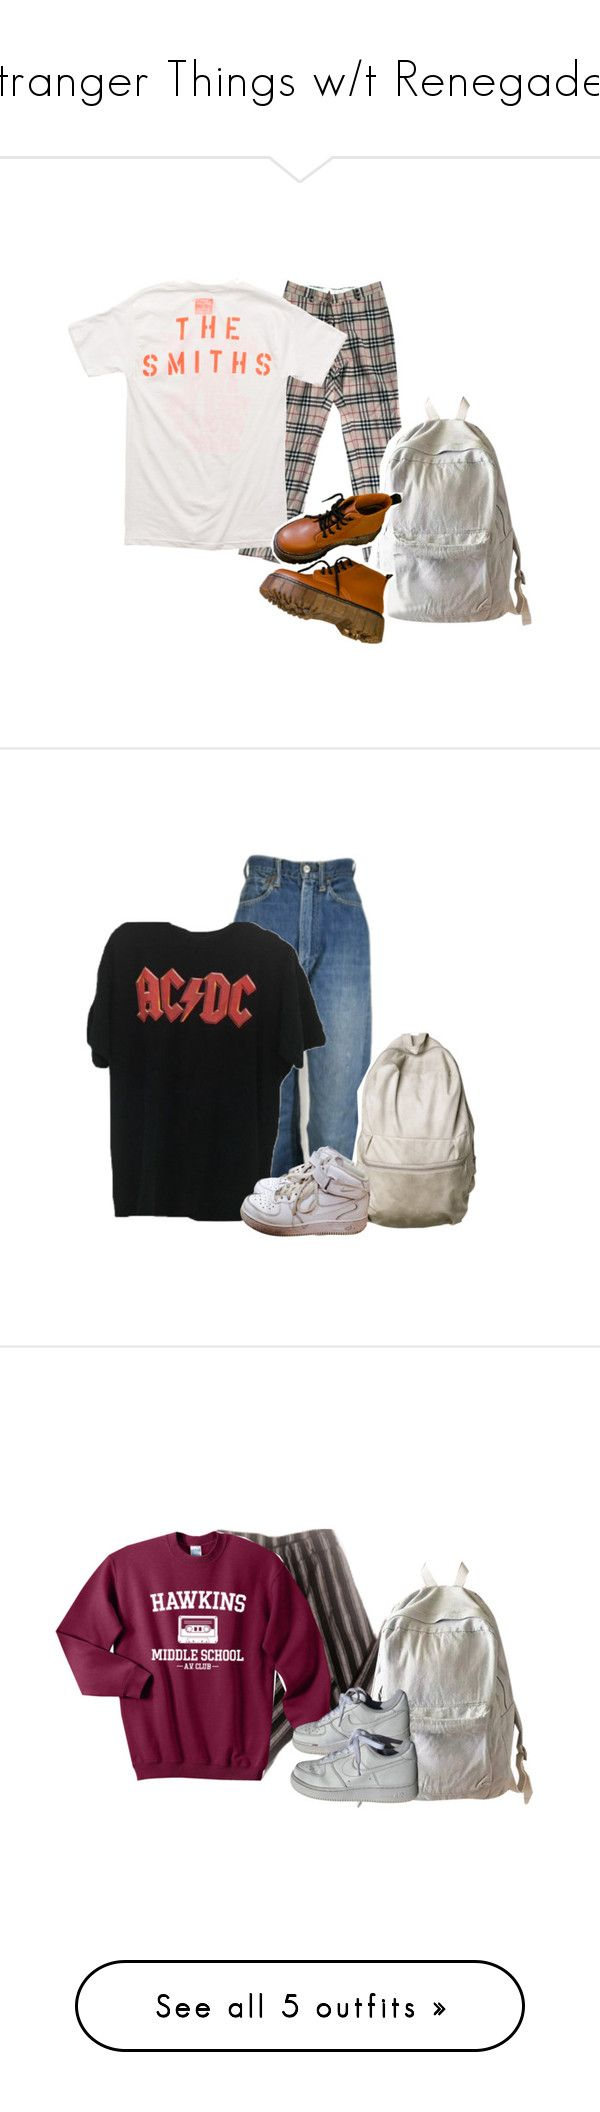 """Stranger Things w/t Renegade🔦"" by maple-virgo920 ❤ liked on Polyvore featuring Burberry, Opening Ceremony, WithChic, Levi's, NIKE, American Apparel, Jones New York, Converse, J Brand and Chanel"